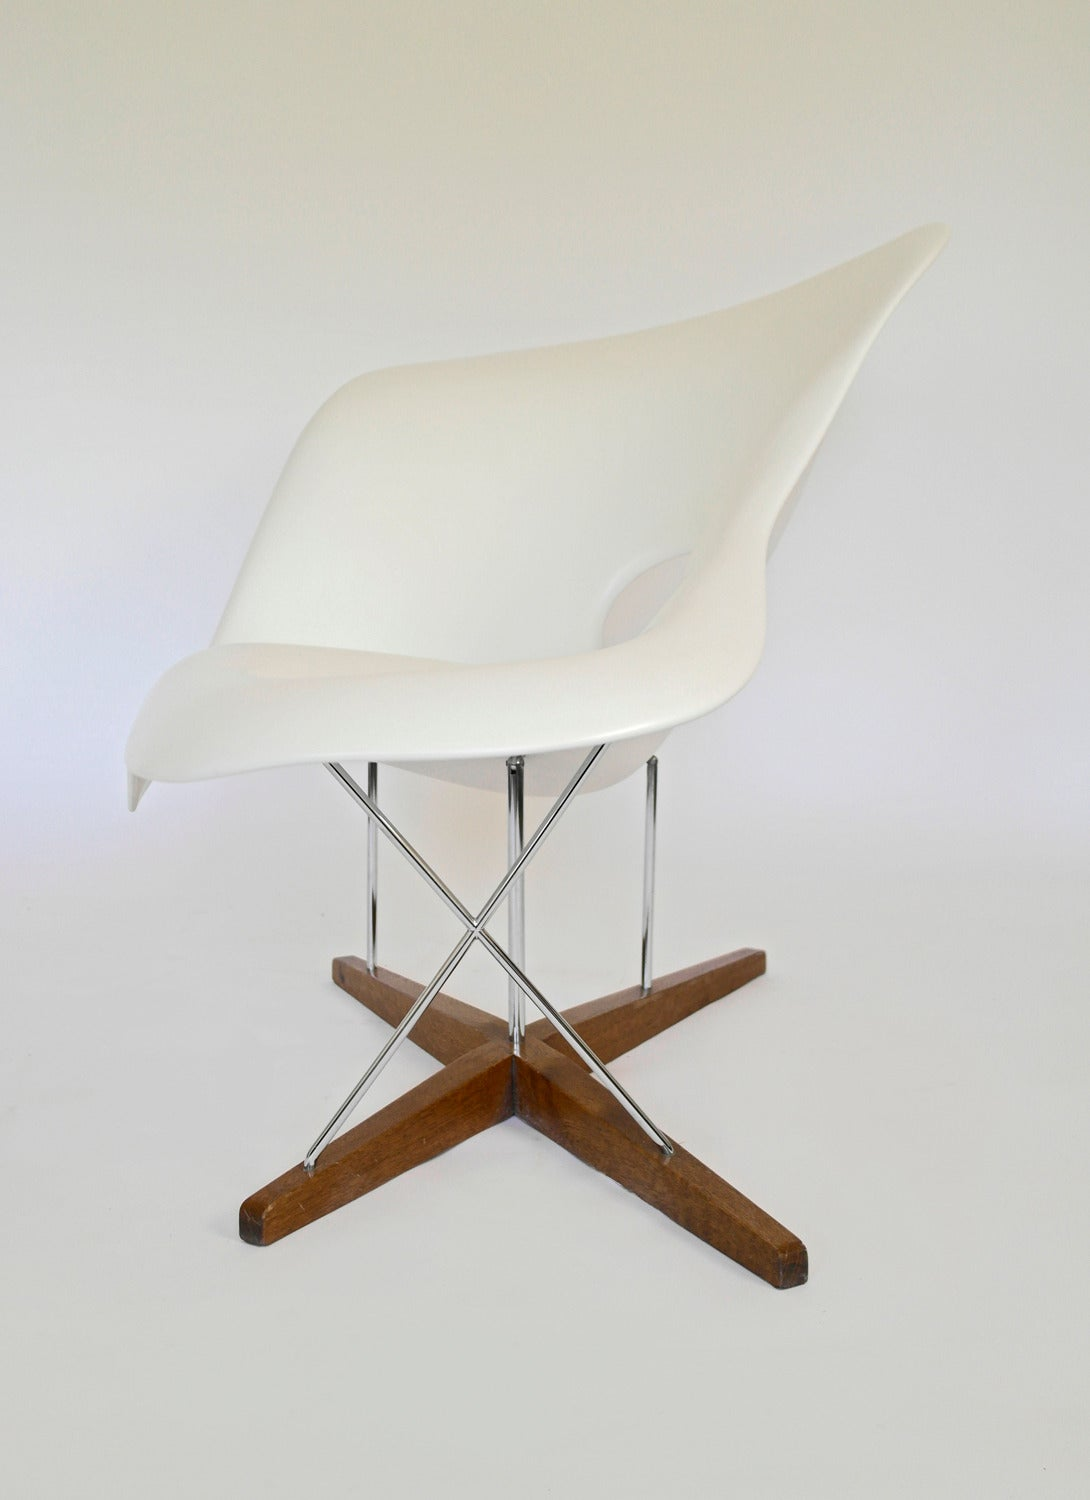 Vitra edition la chaise by charles and ray eames for sale for La chaise eames occasion